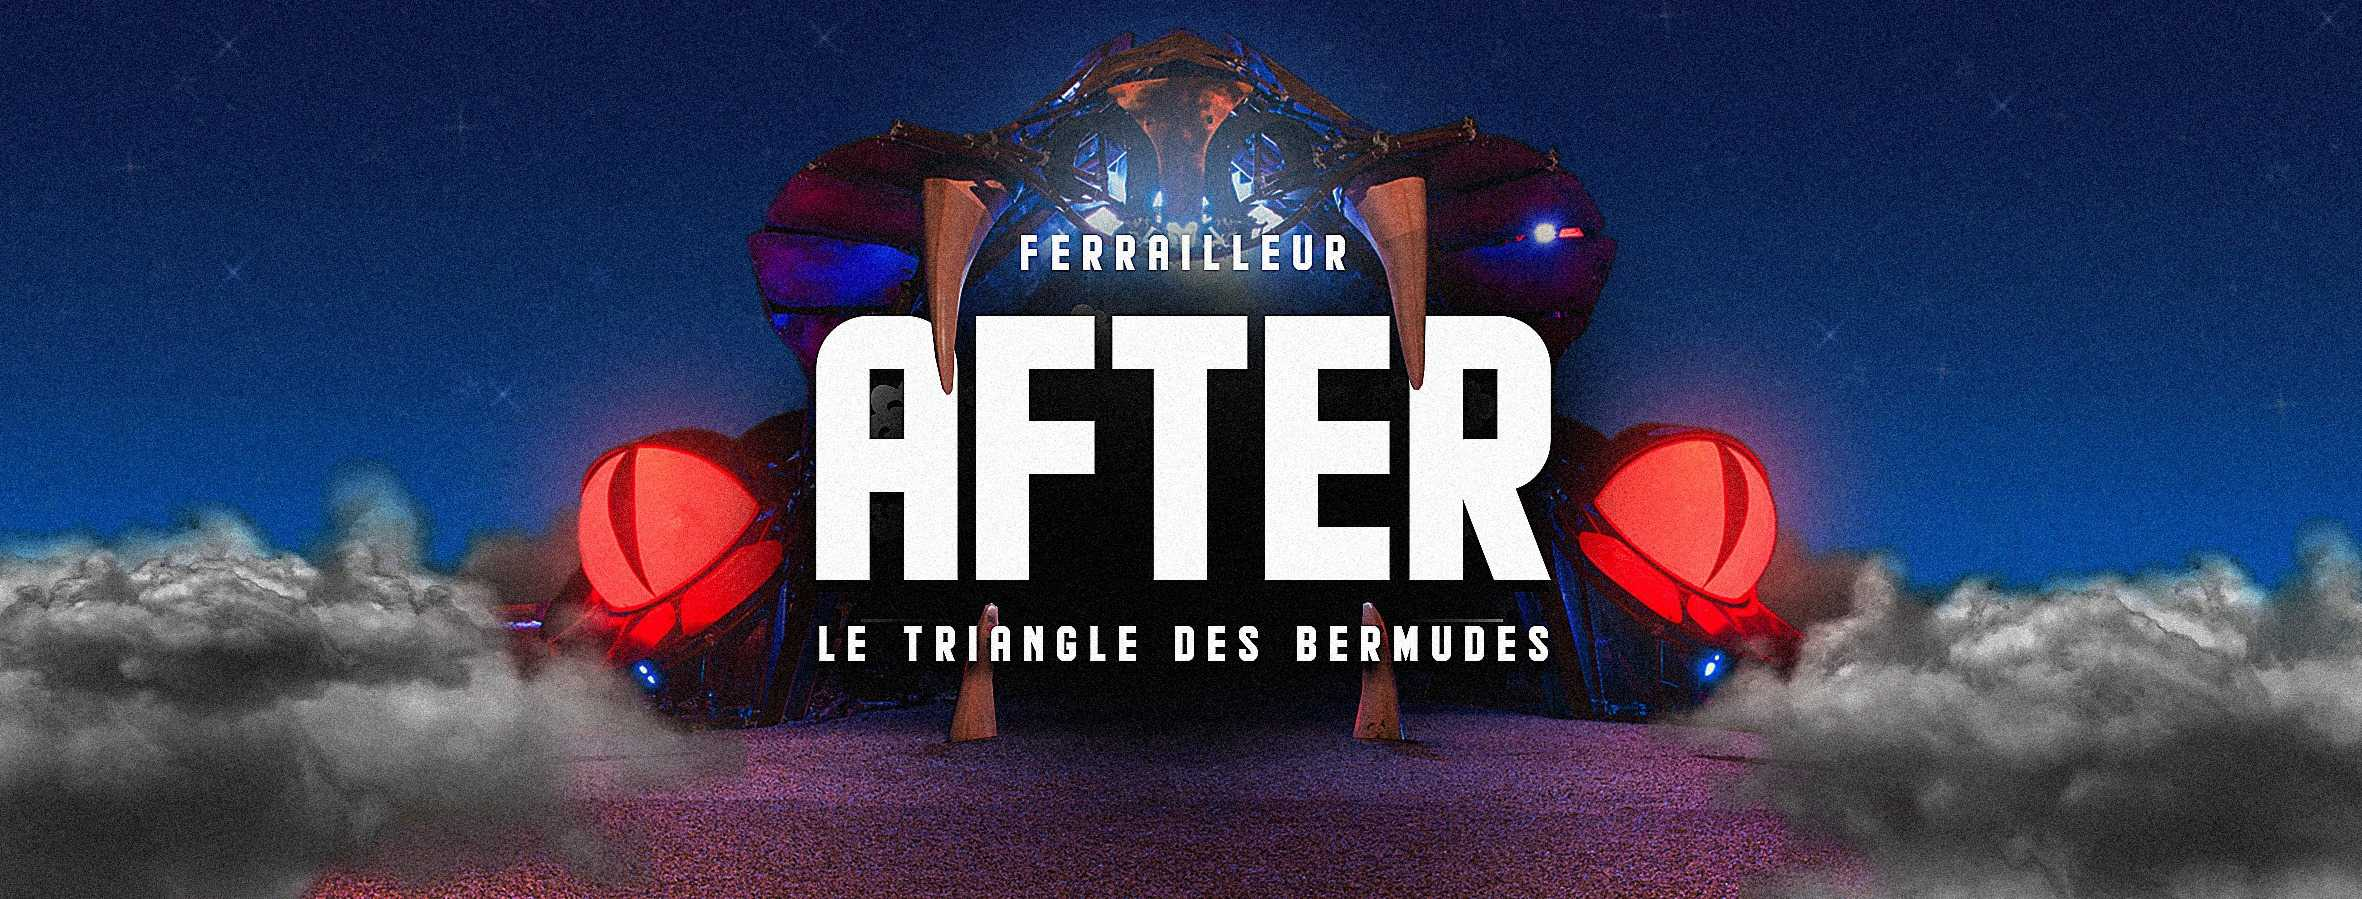 after ferrailleur transfert nantes